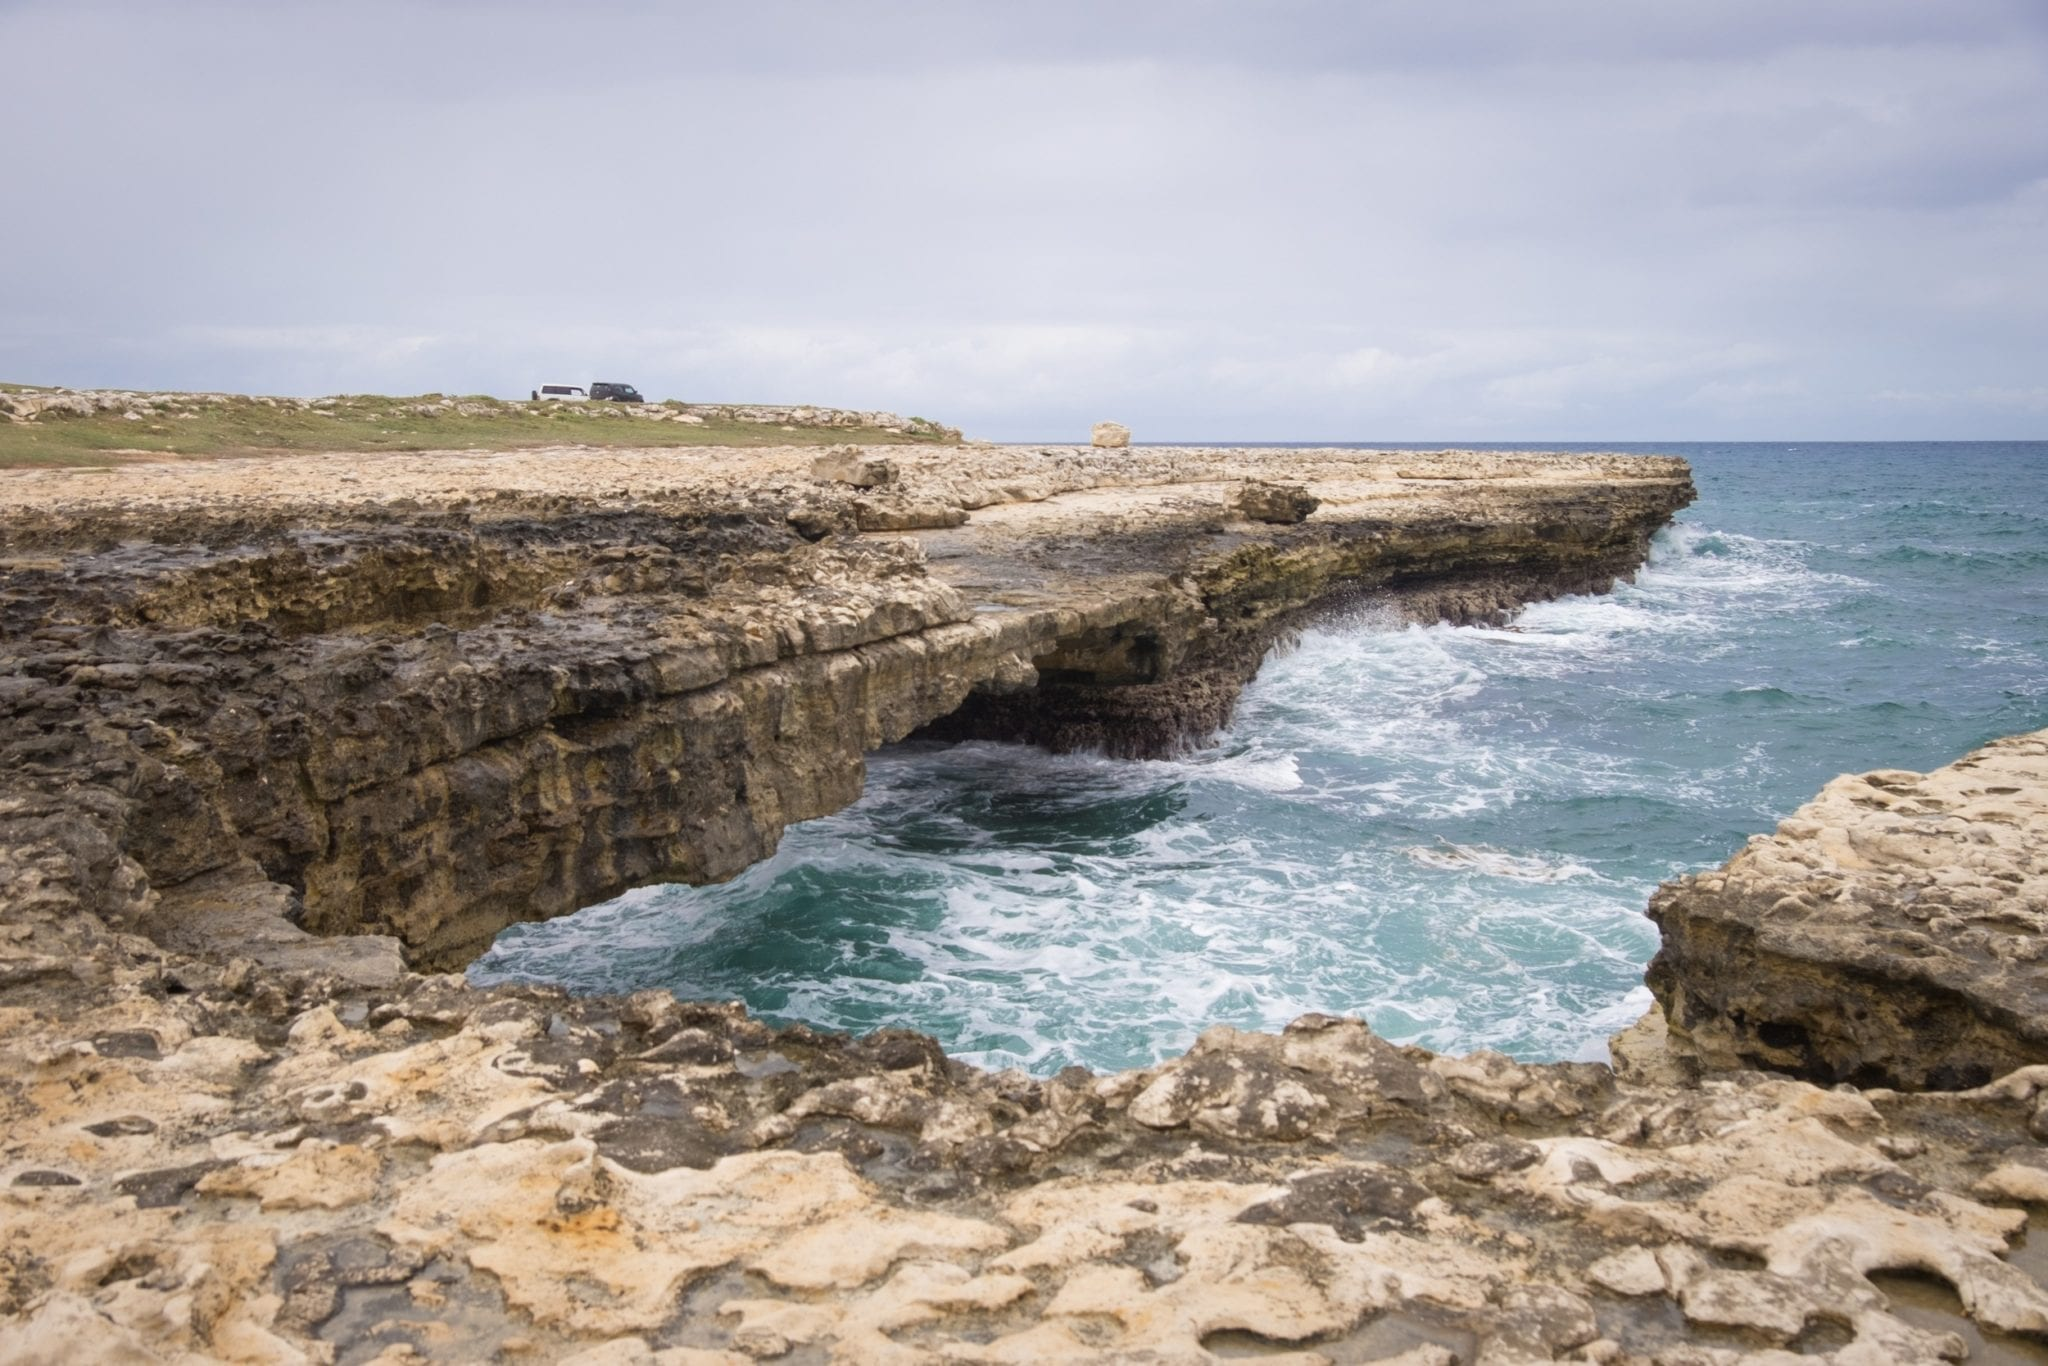 The Devil's Bridge, a rocky formation jutting out into the violent sea in Antigua. Waves are coming high, the sea and sky are both slate gray.